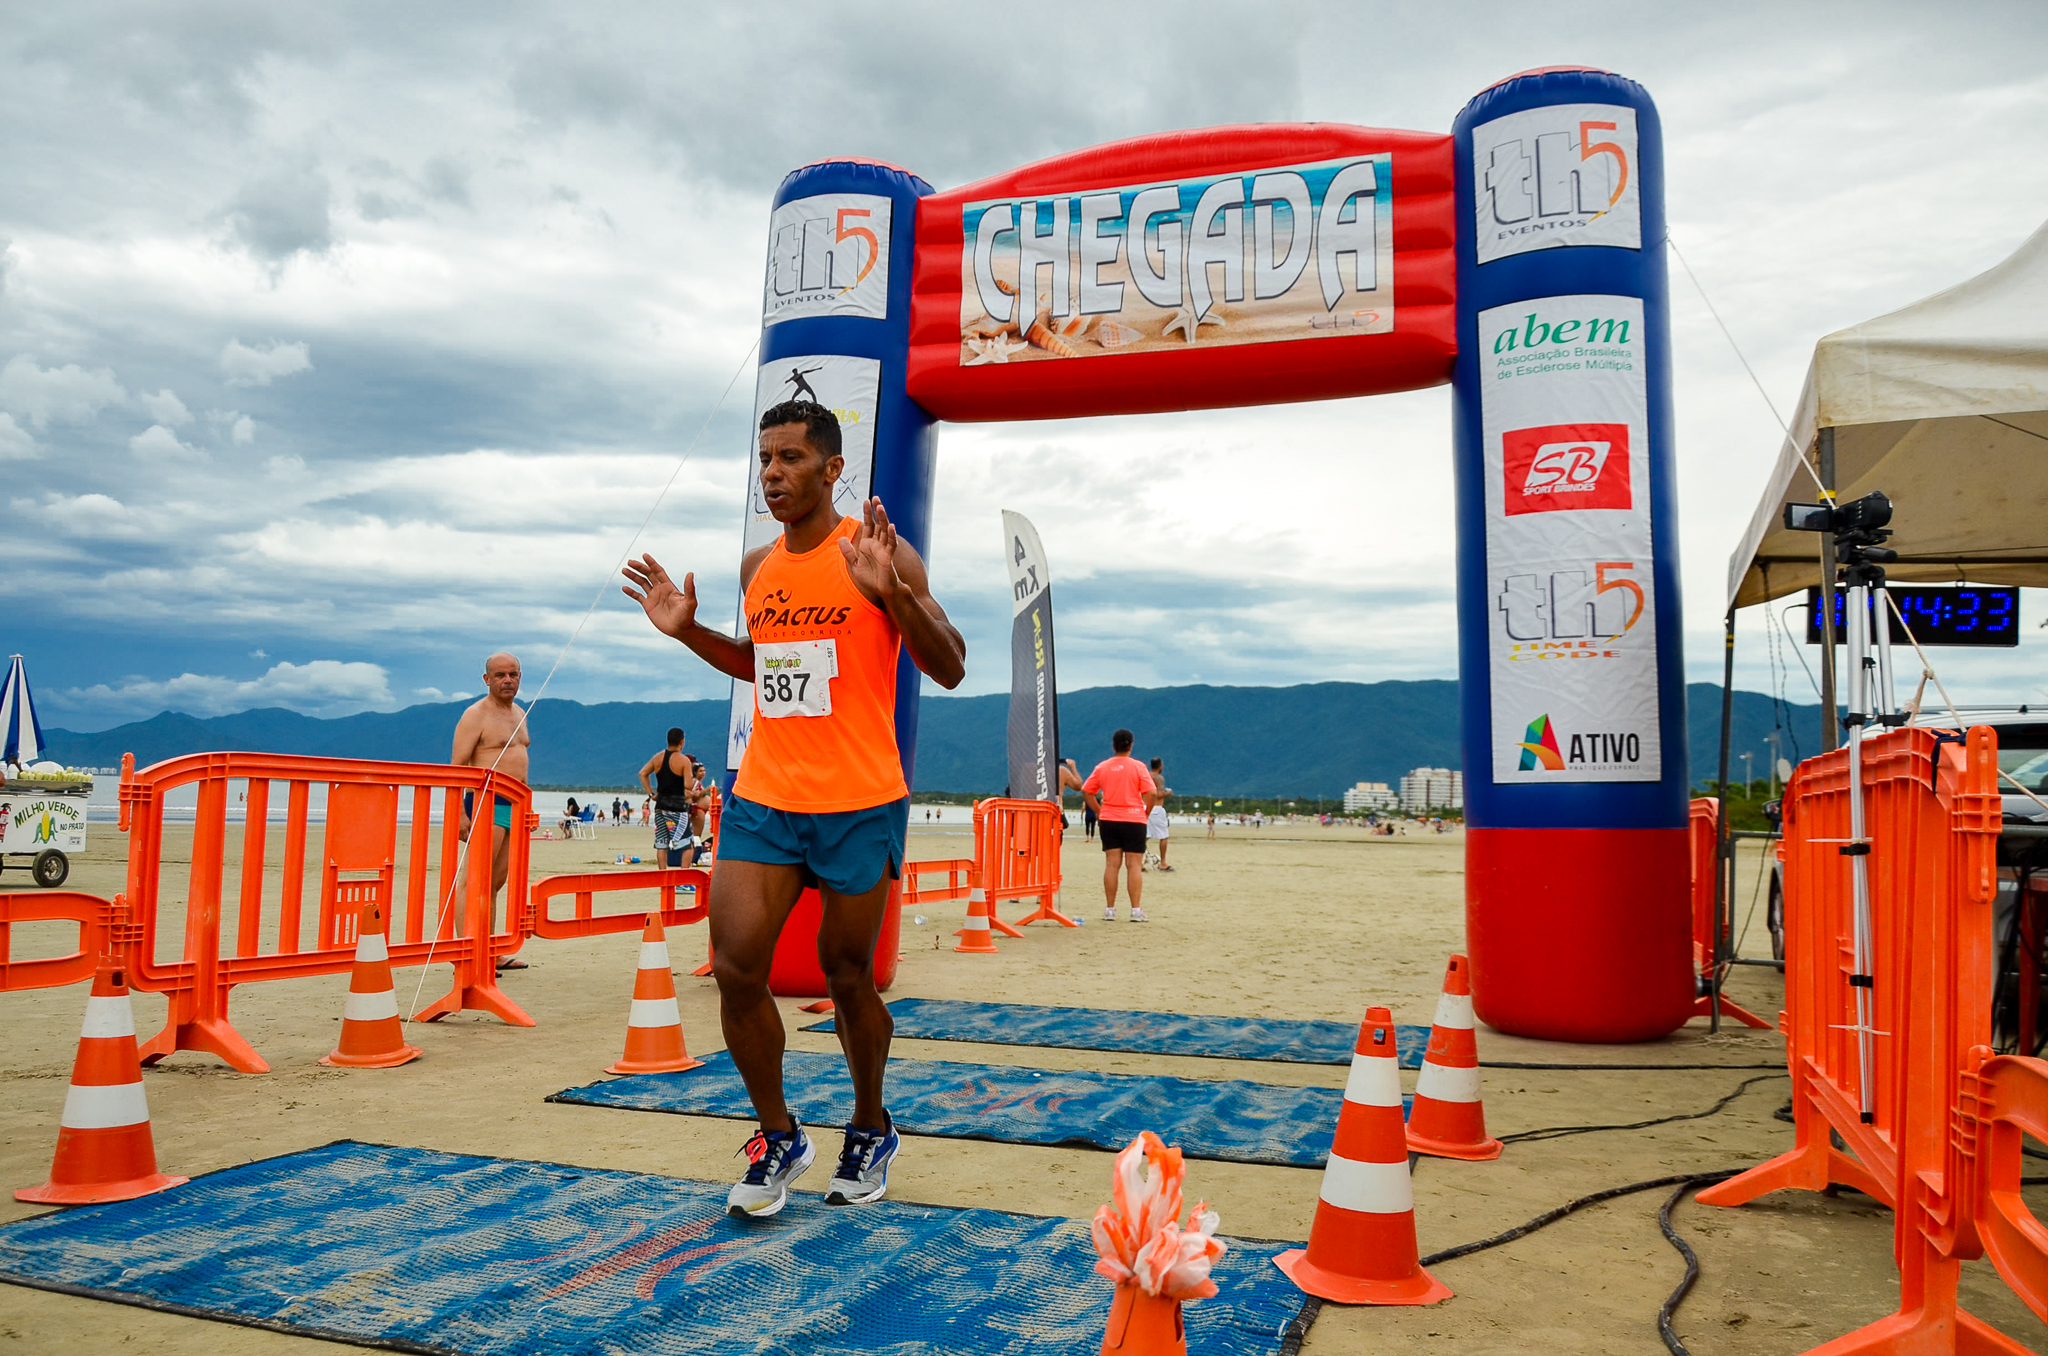 ... acontece a primeira etapa do Performance Run Aquathlon   Travessia  2019. A prova promete agitar as águas tranquilas do Cantão do Indaiá 194d52a36bd4f